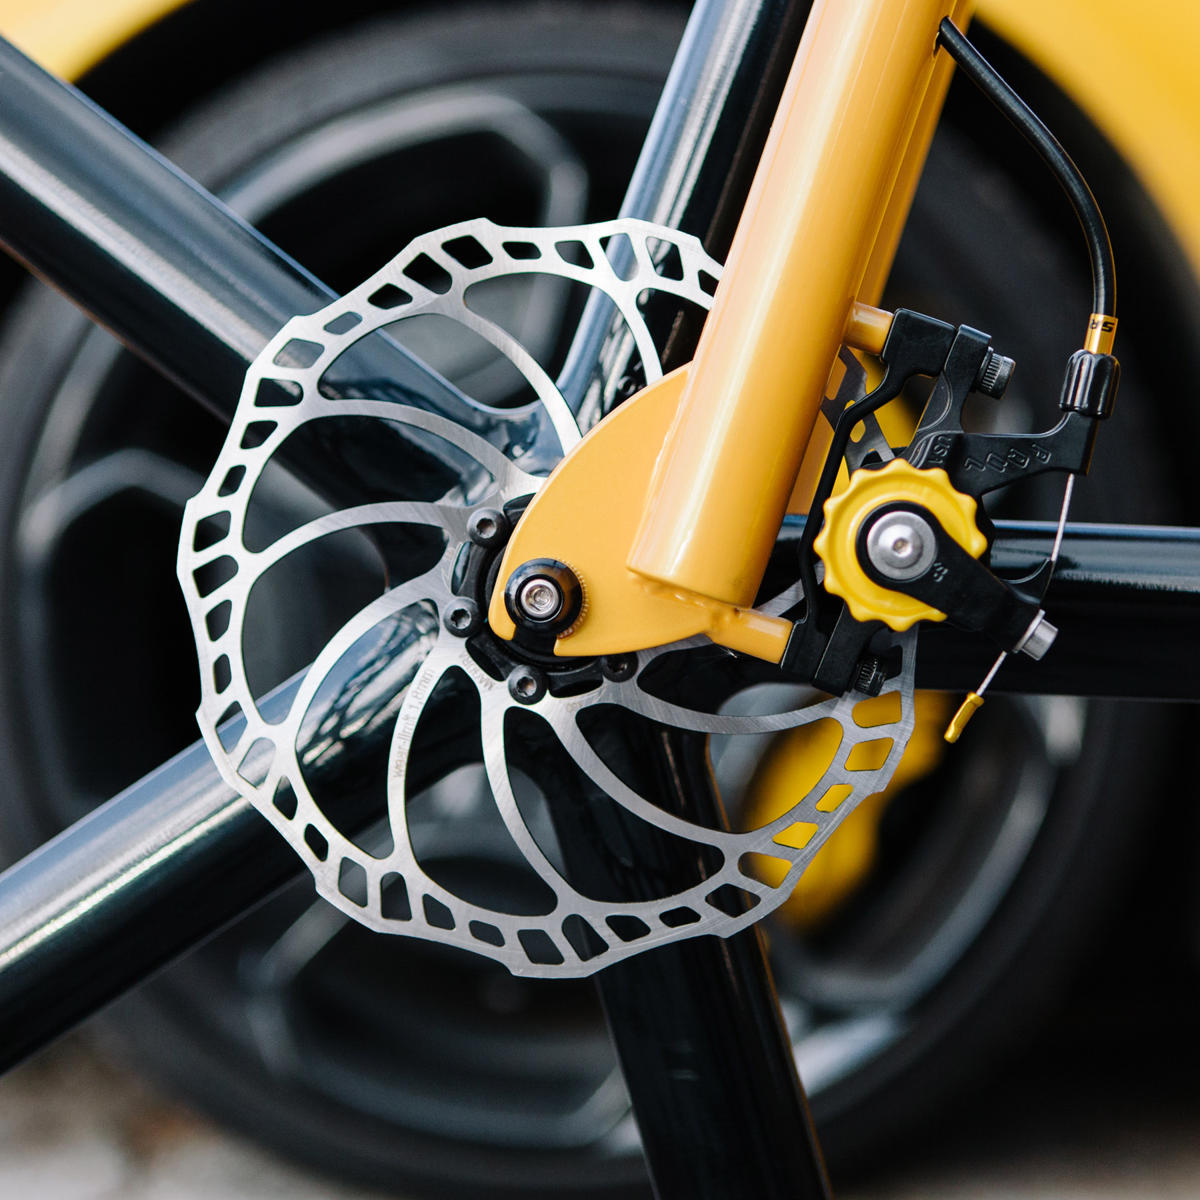 veloina-bicycles-viks-gt-commuter-bicycle-1